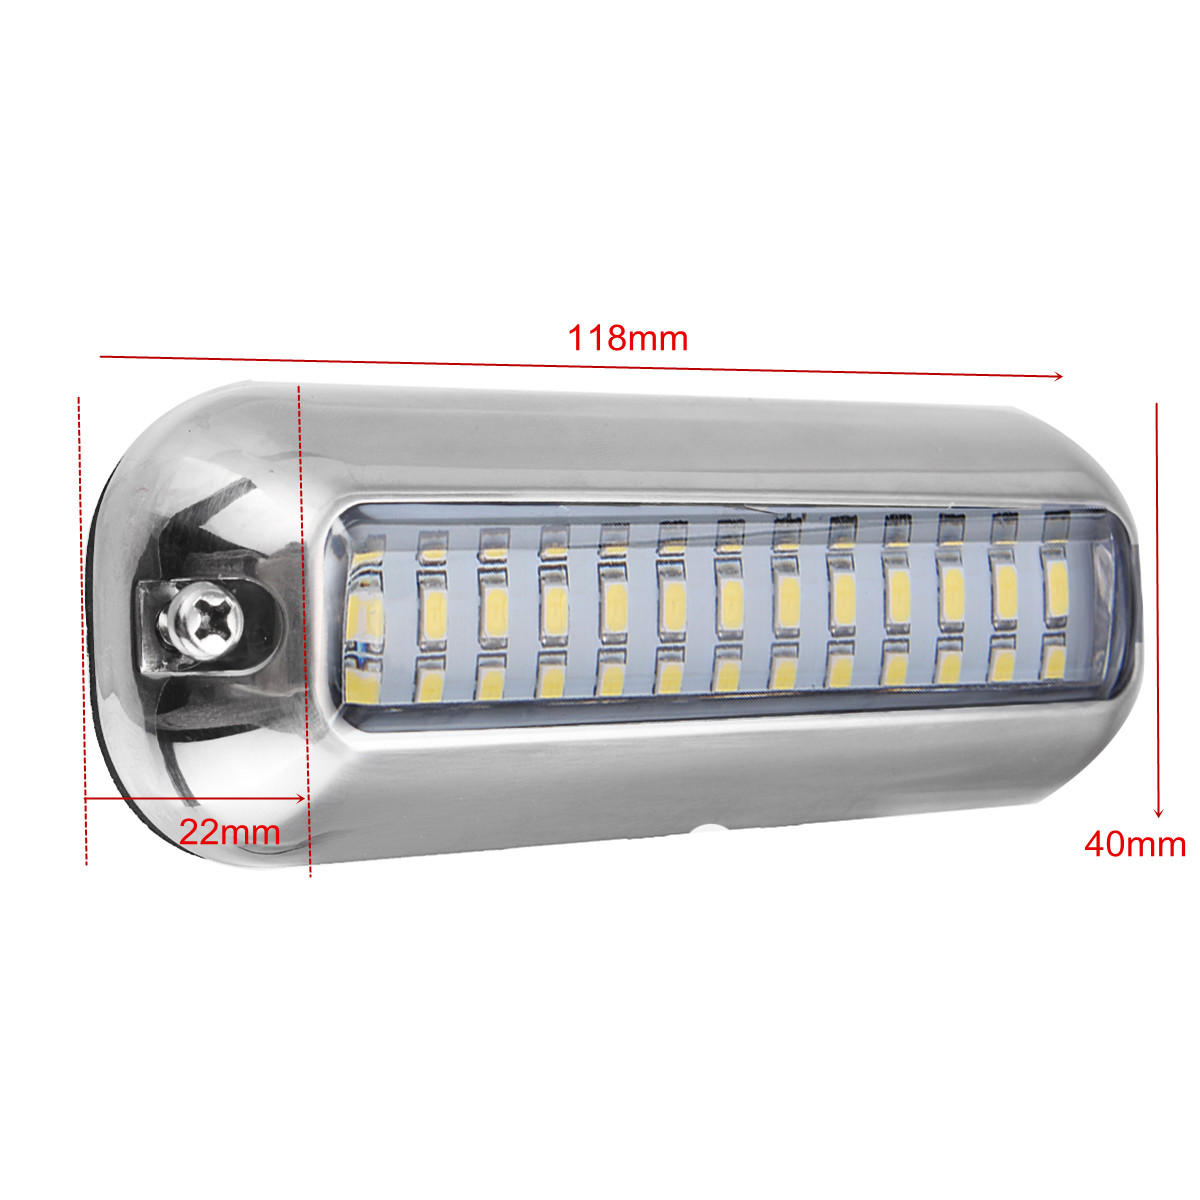 Reasonable 50w 27led Red/blue/green Boat Light Underwater Pontoon Marine Transom Light Ip68 Waterproof Stainless Steel Anchor Stern Lamp Atv,rv,boat & Other Vehicle Boat Parts & Accessories